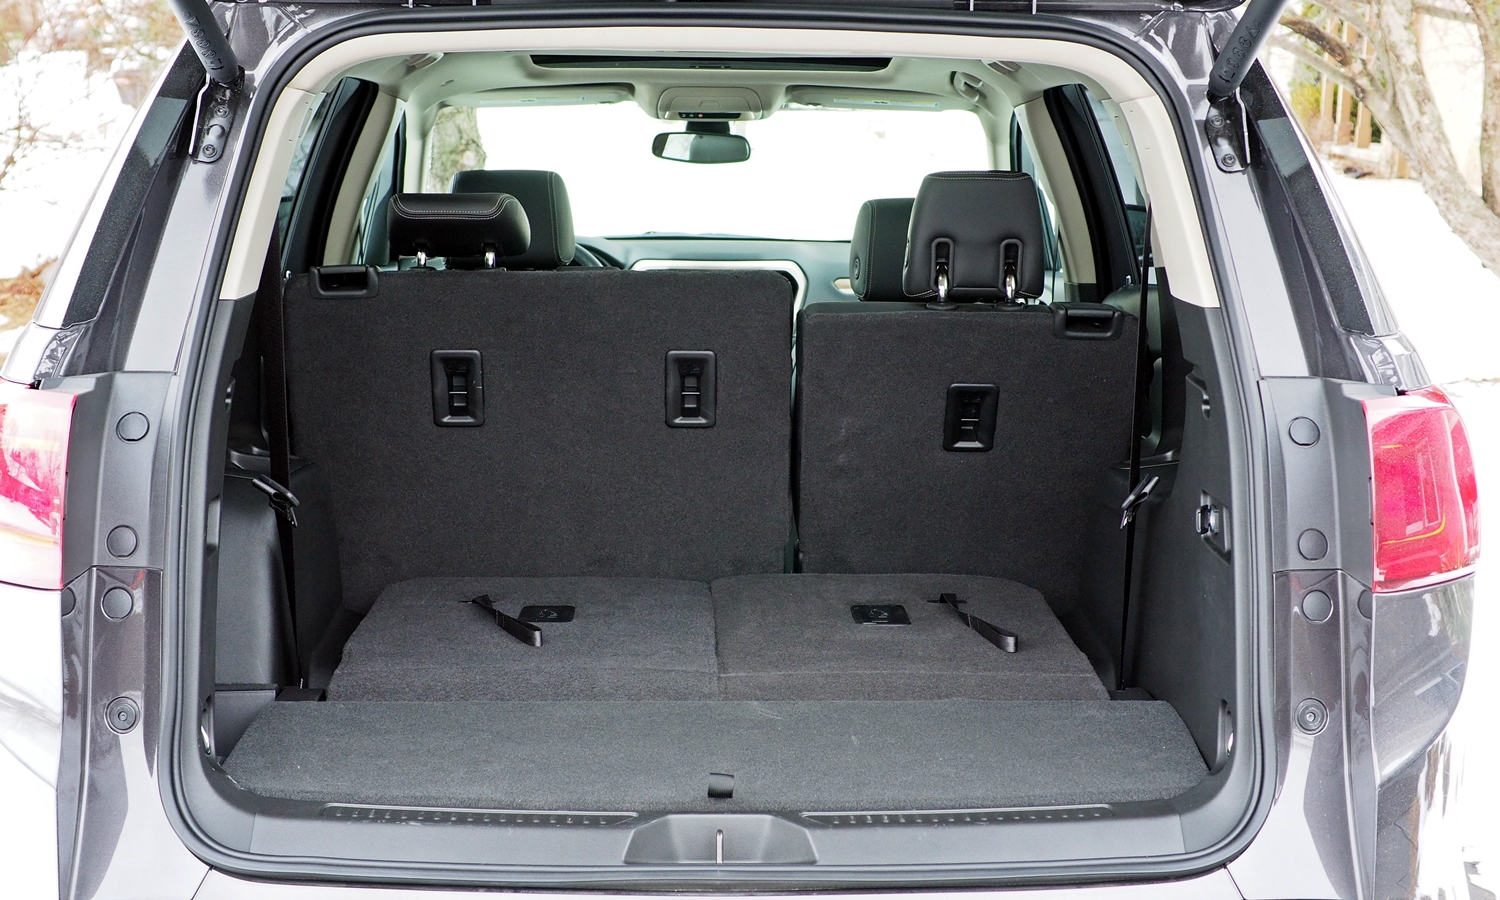 GMC Acadia Photos: 2017 GMC Acadia cargo area third row folded